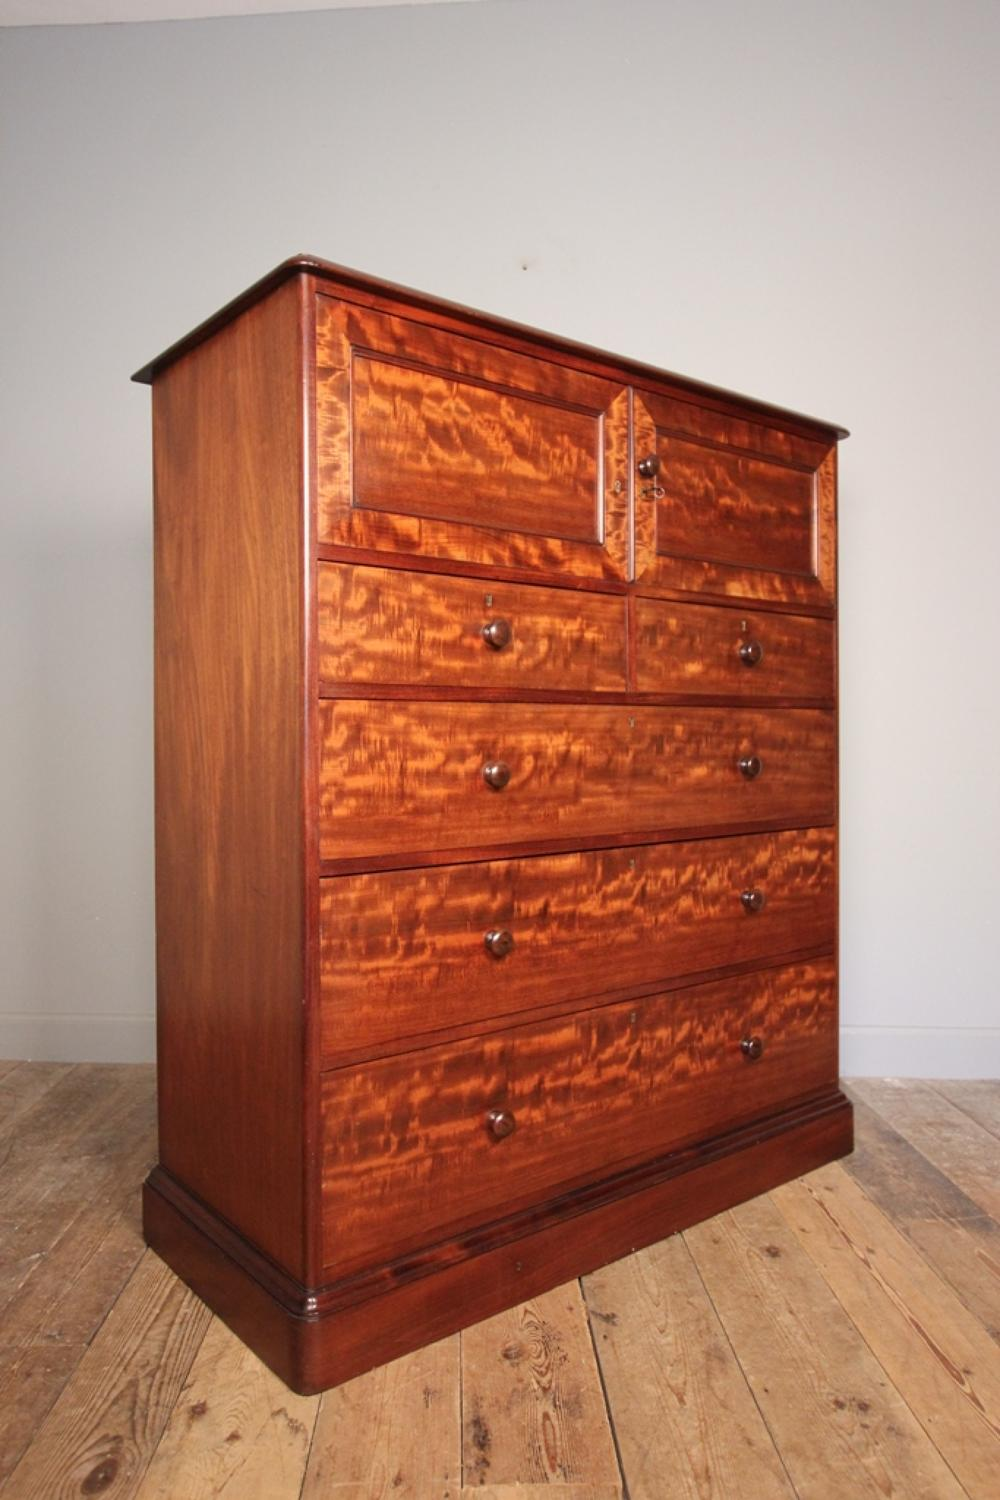 Superb Gillows Plum Pudding Chest of Drawers